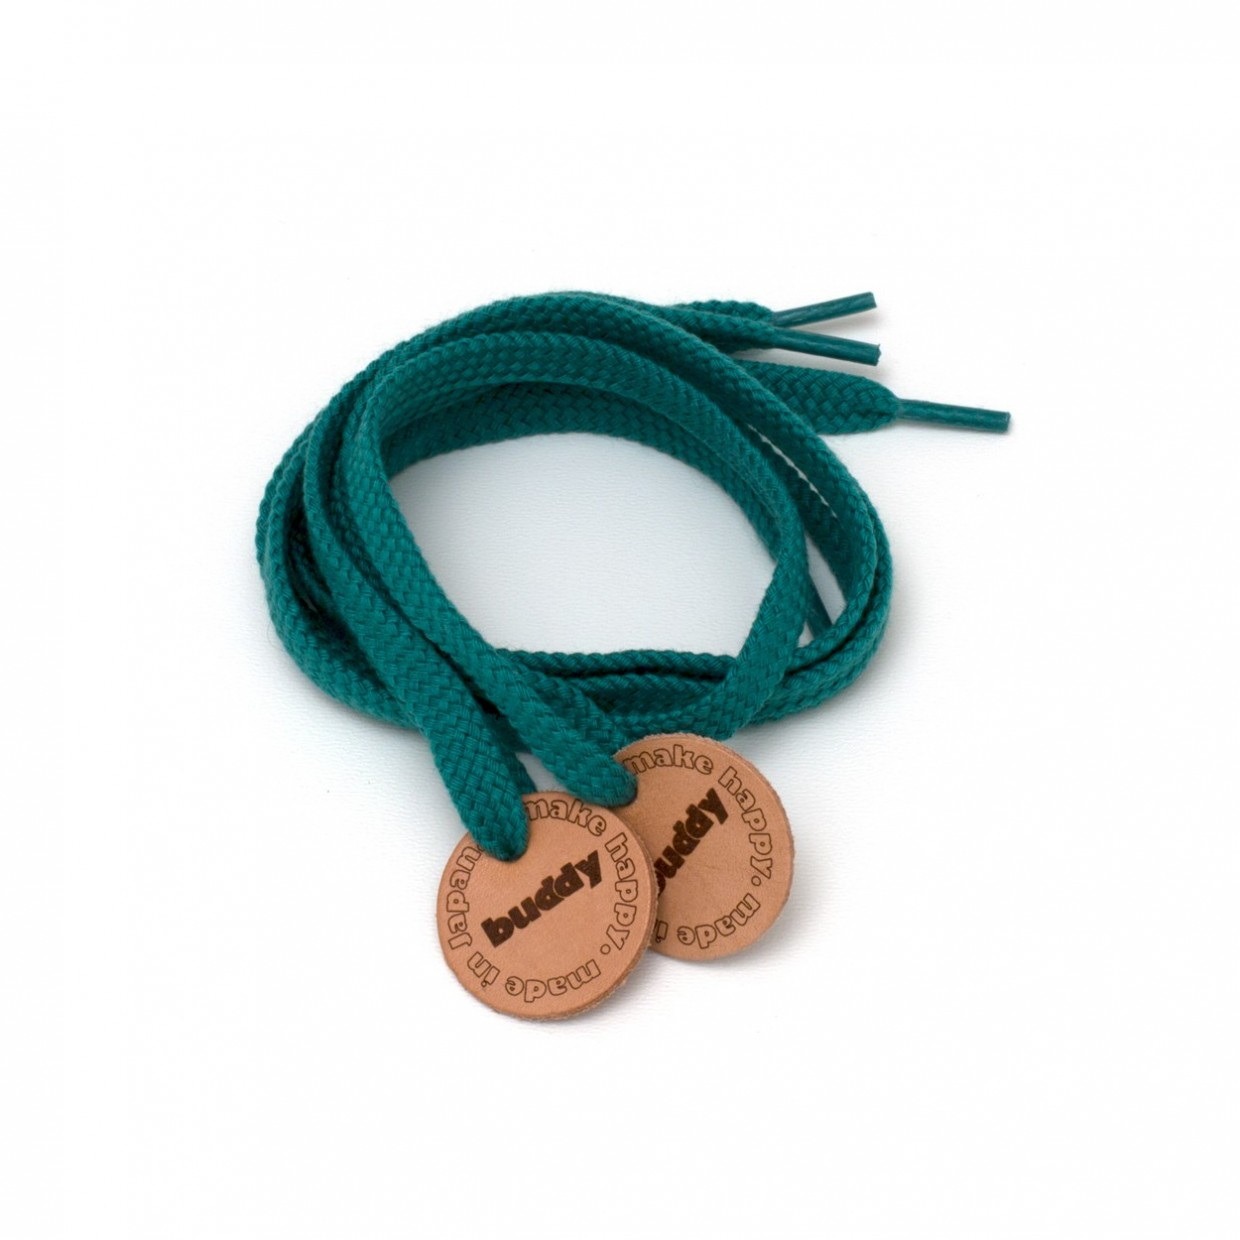 Shoelaces Green with Leather patch 78 cm : 31 ""